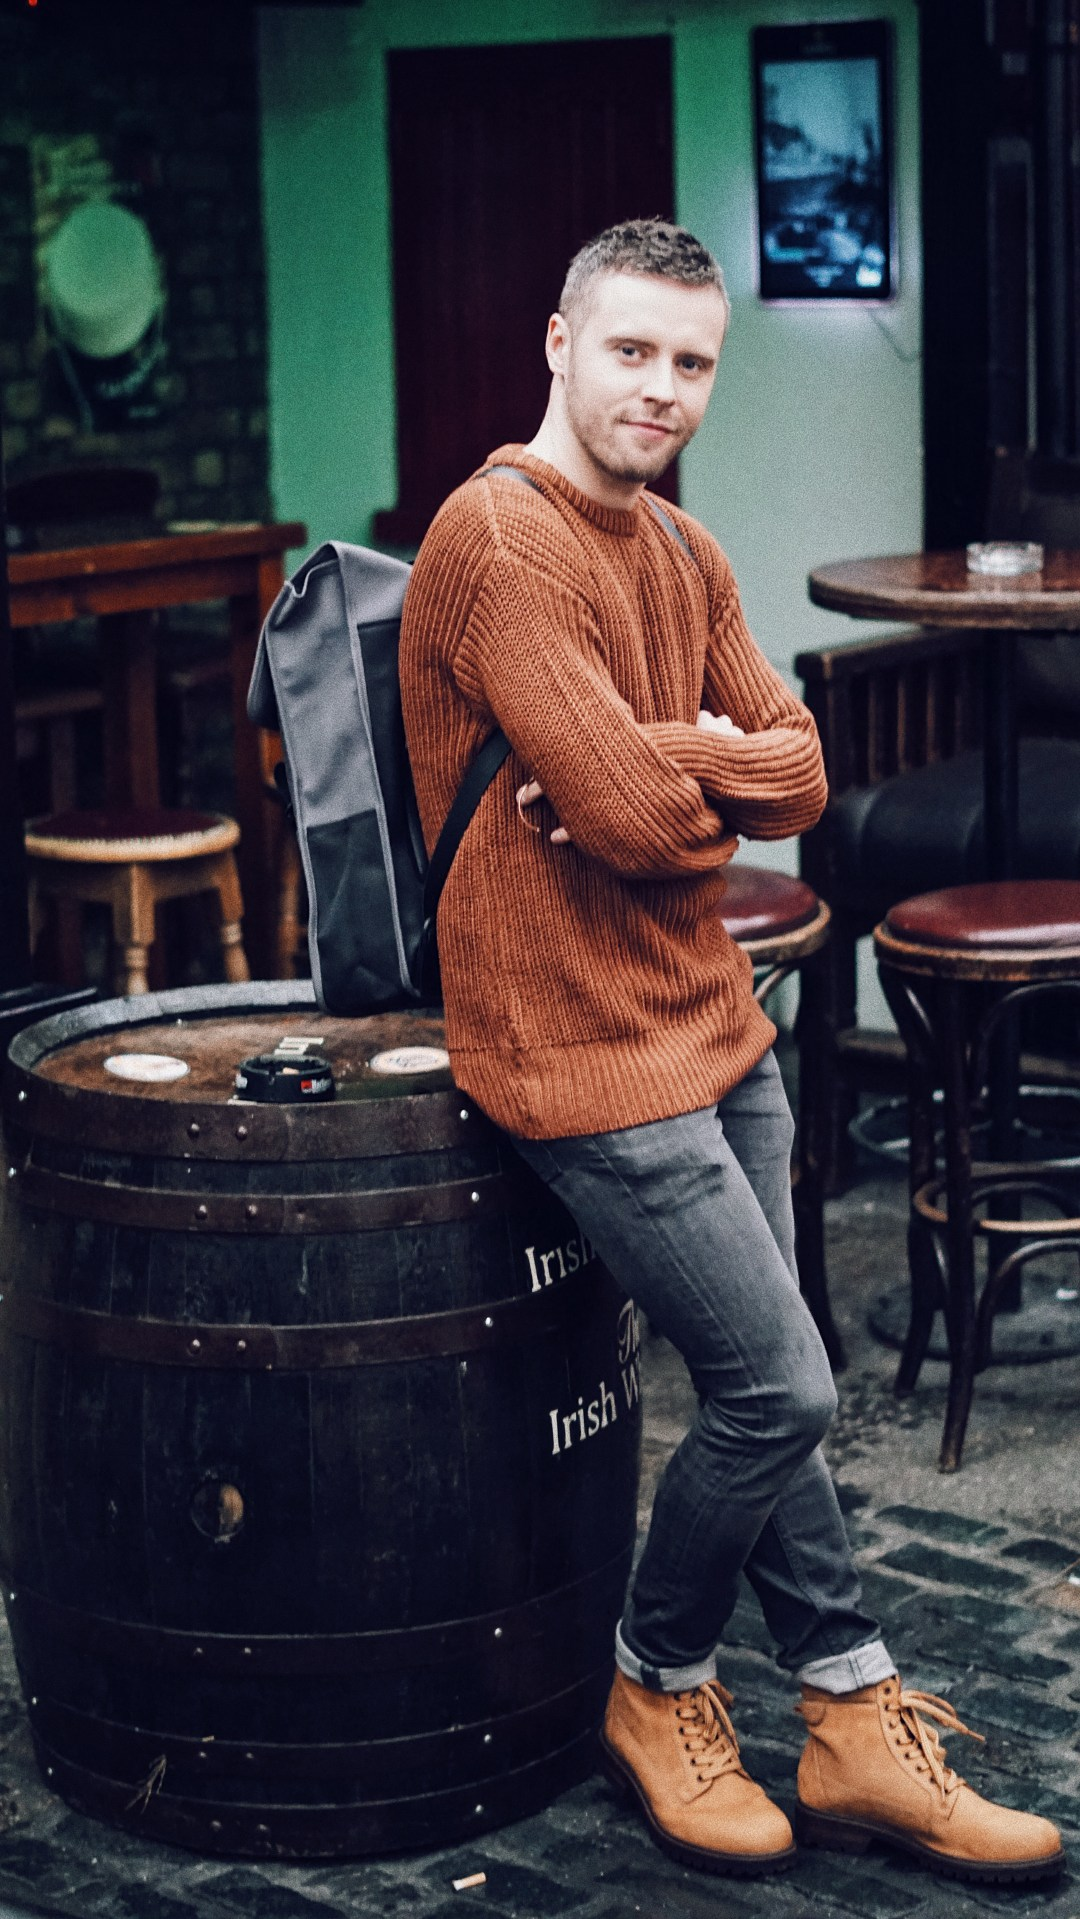 The Mighty Craic. Wearing knit jumper from H&M, boots from Zara, jeans from All Saints and backpack from RAINS. Shot at The Brazer Head pub in Dublin, Ireland.